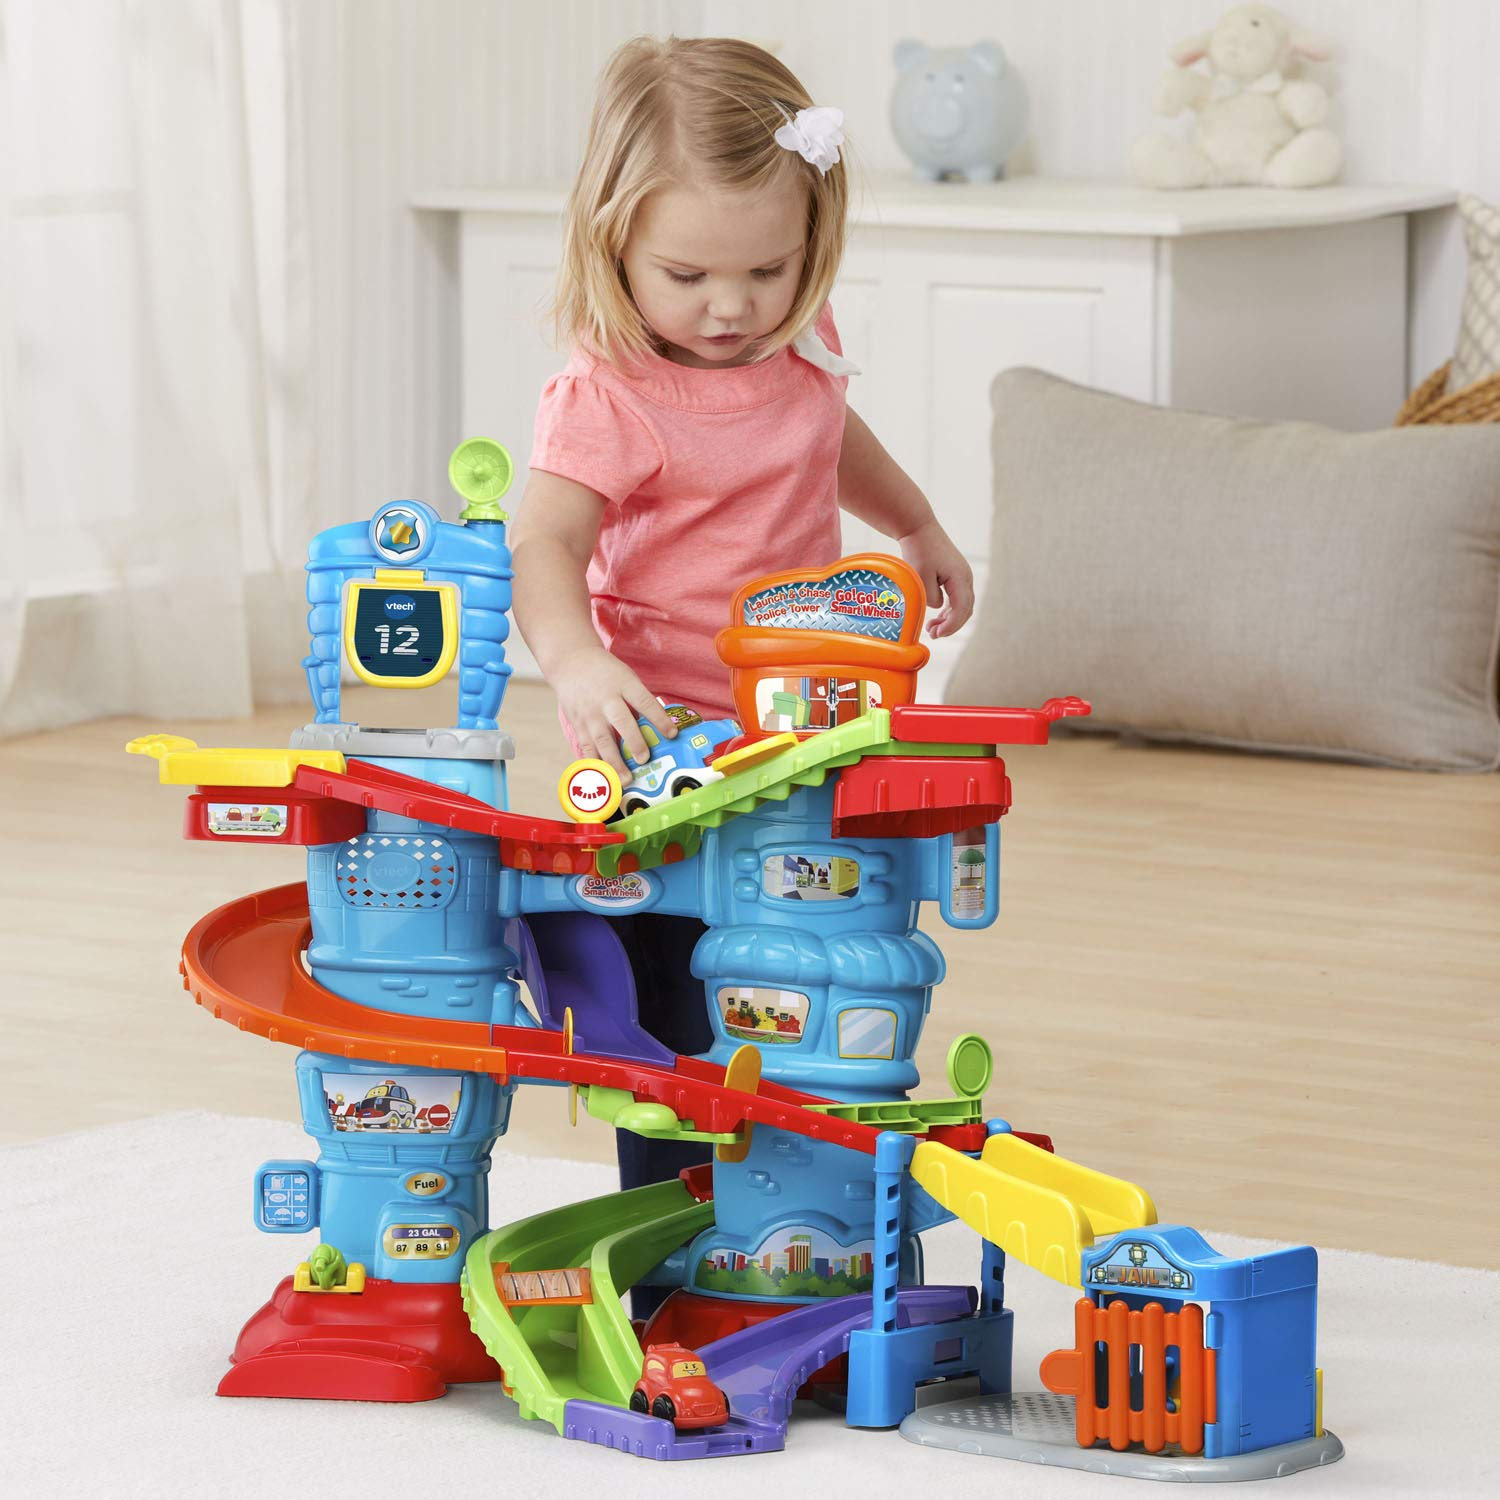 VTech Go! Go! Smart Wheels Launch and Chase Police Tower by VTech (Image #4)